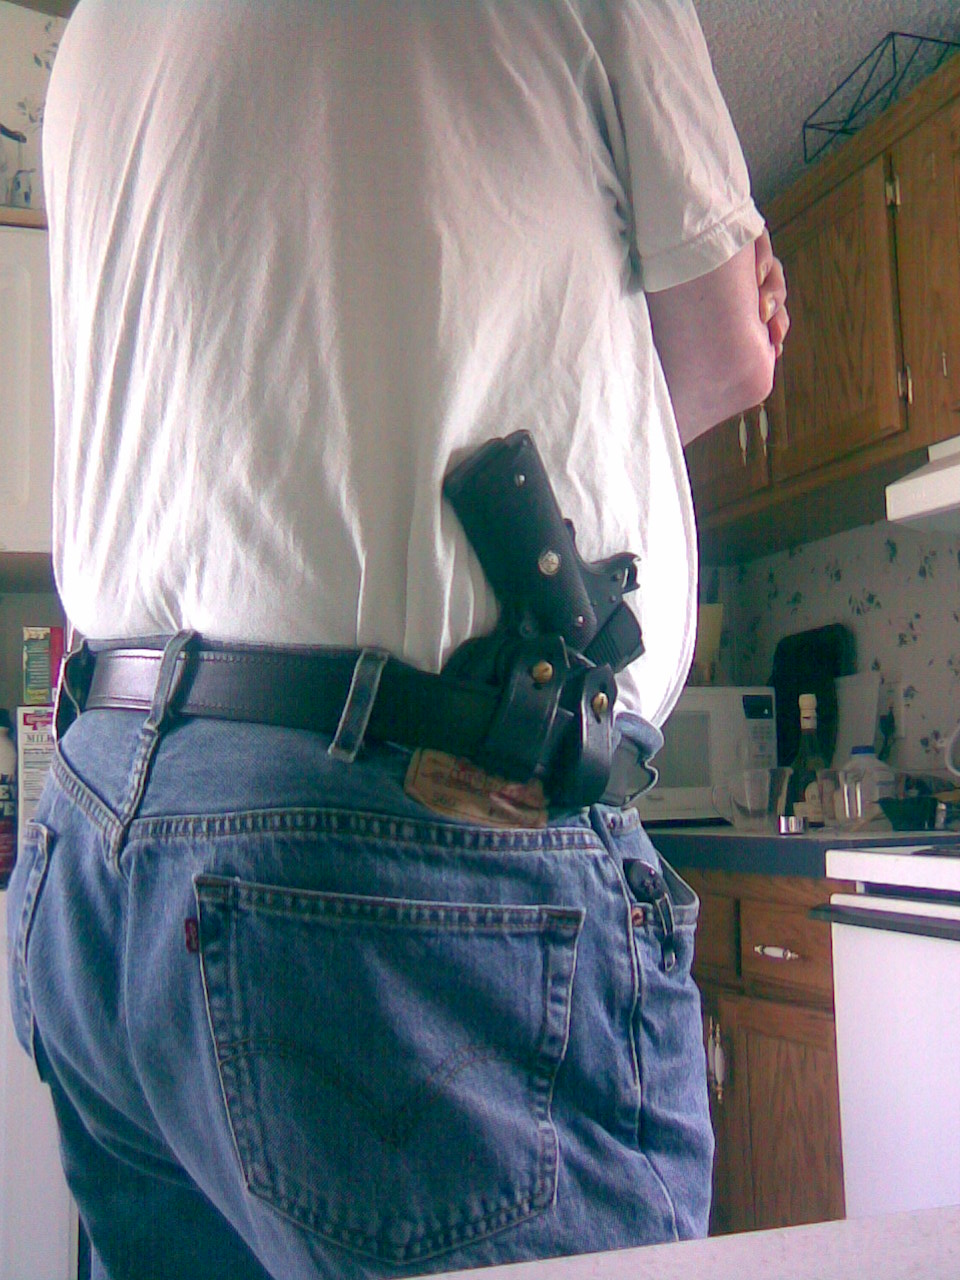 Let's See Your Pic's - How You Carry Concealed.-kramer_iwb.jpg